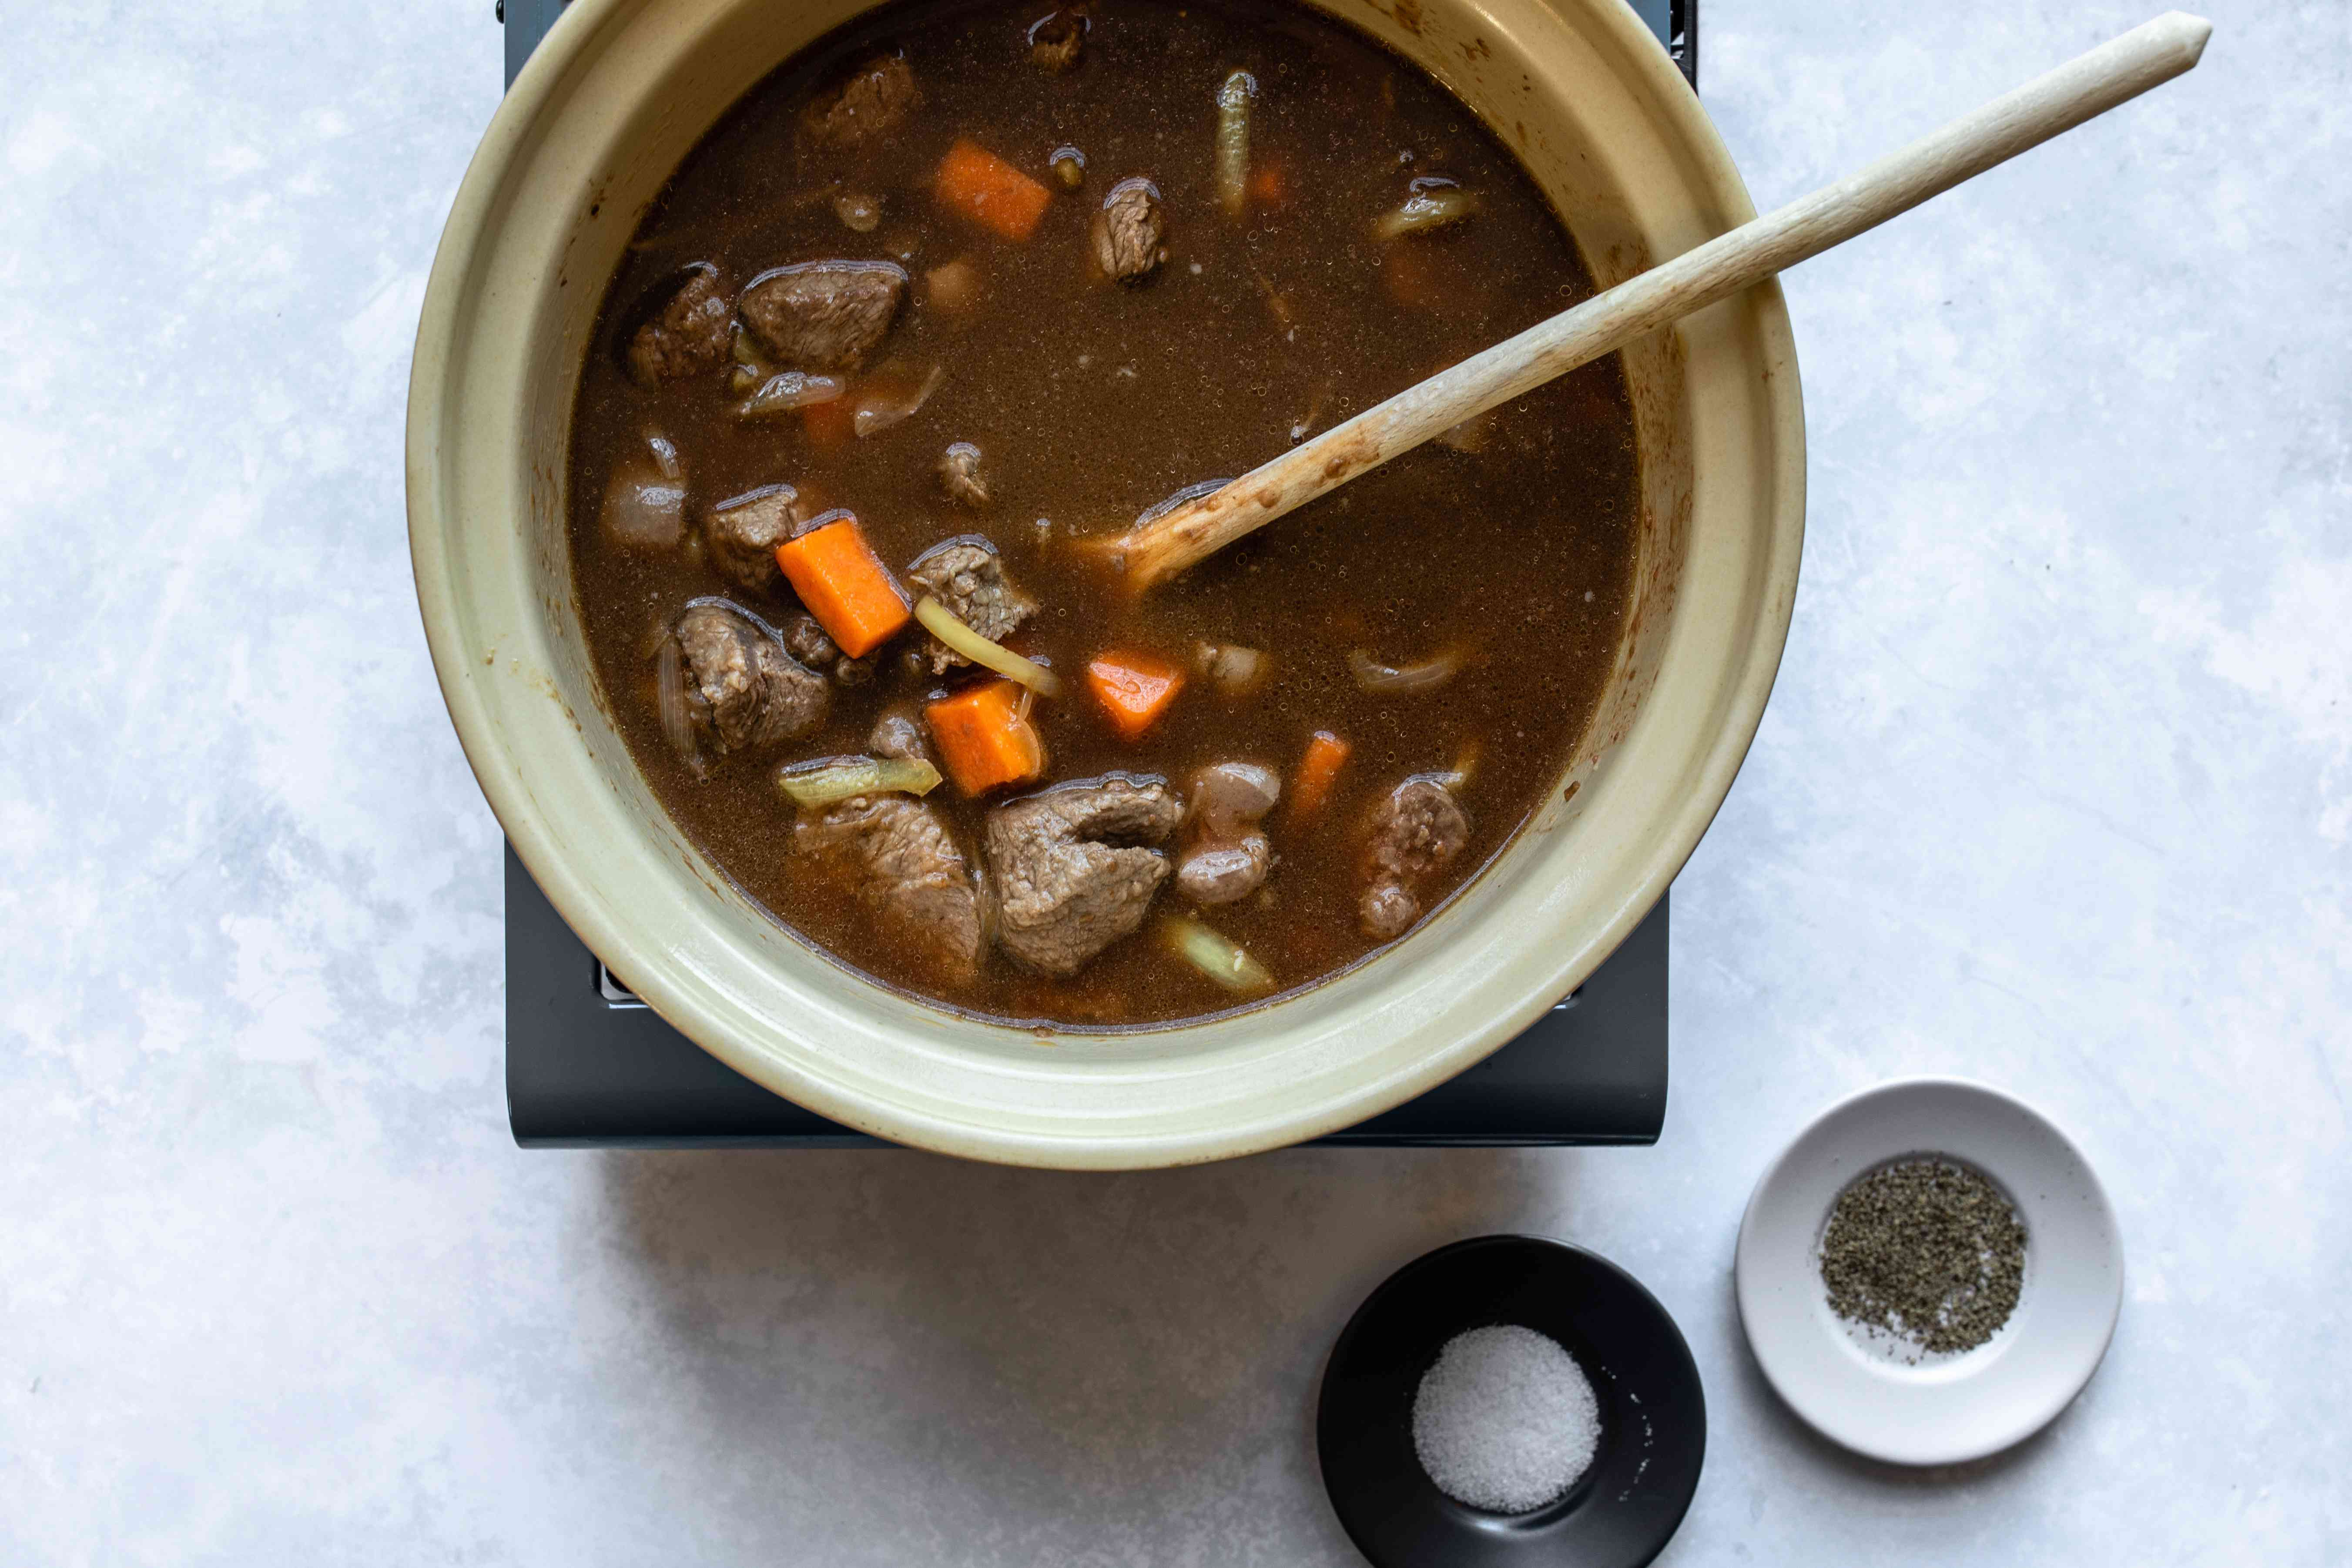 Return meat to pan and add stock